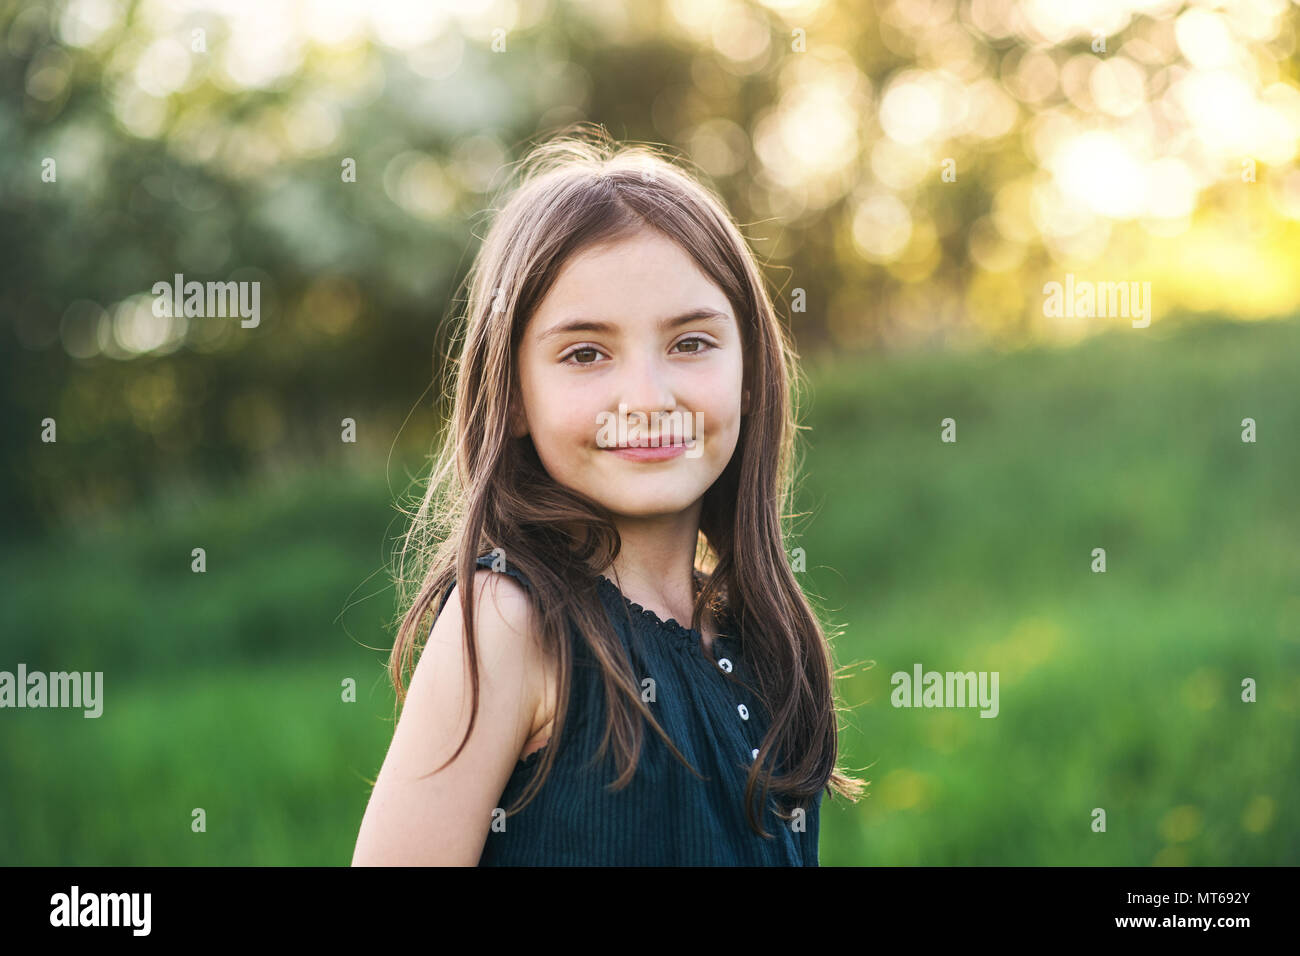 A small girl standing outside in nature. - Stock Image